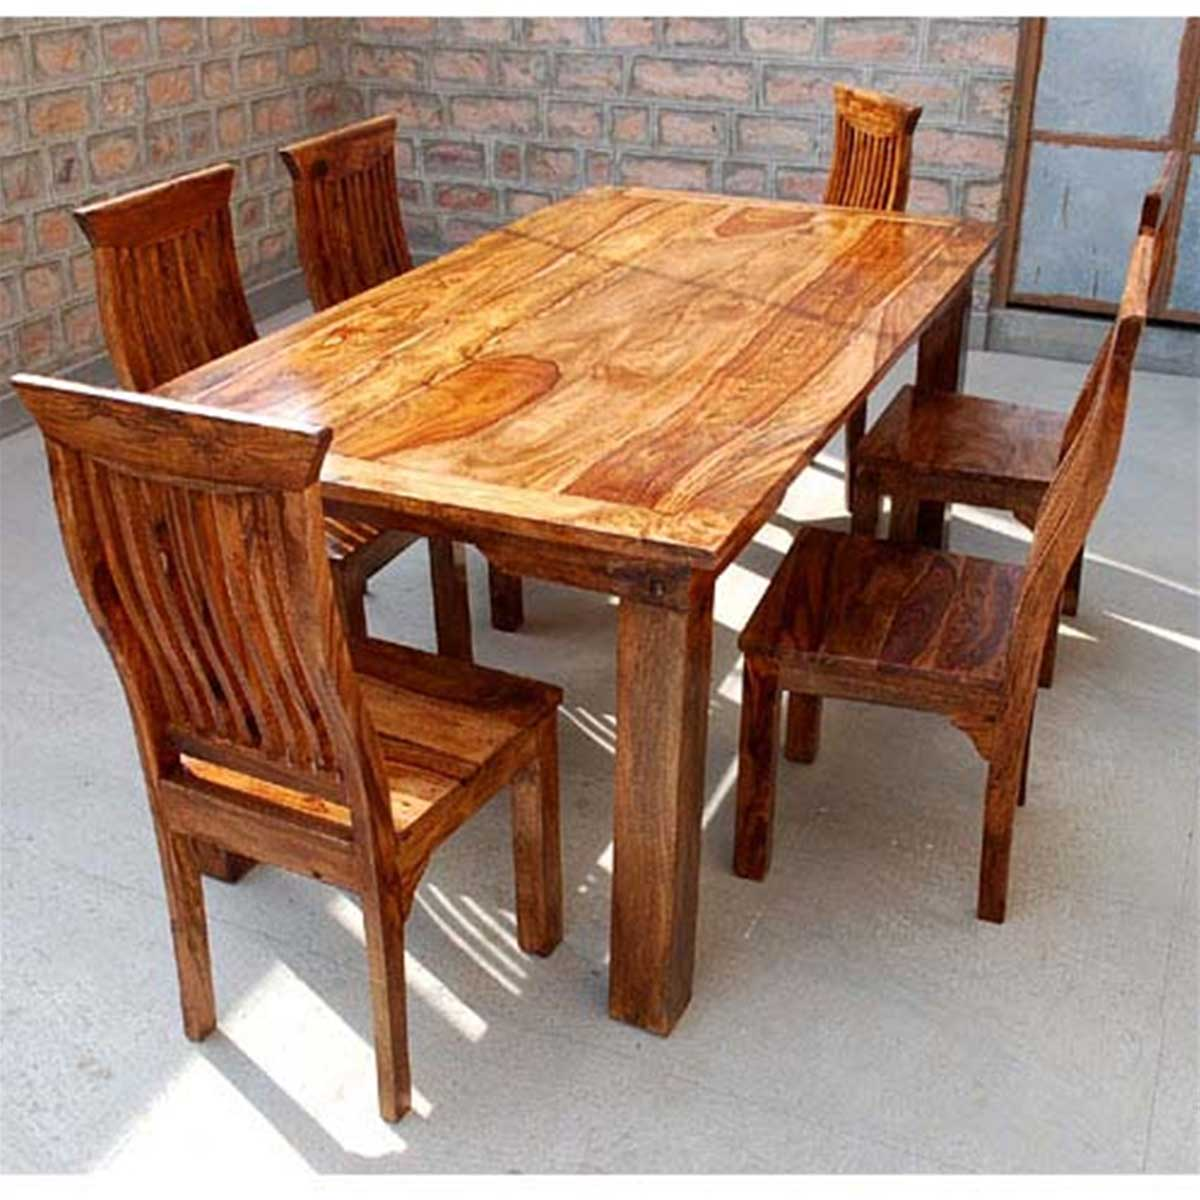 Rustic Ranch Furniture: Dallas Ranch Solid Wood Rustic Dining Table Chairs & Hutch Set